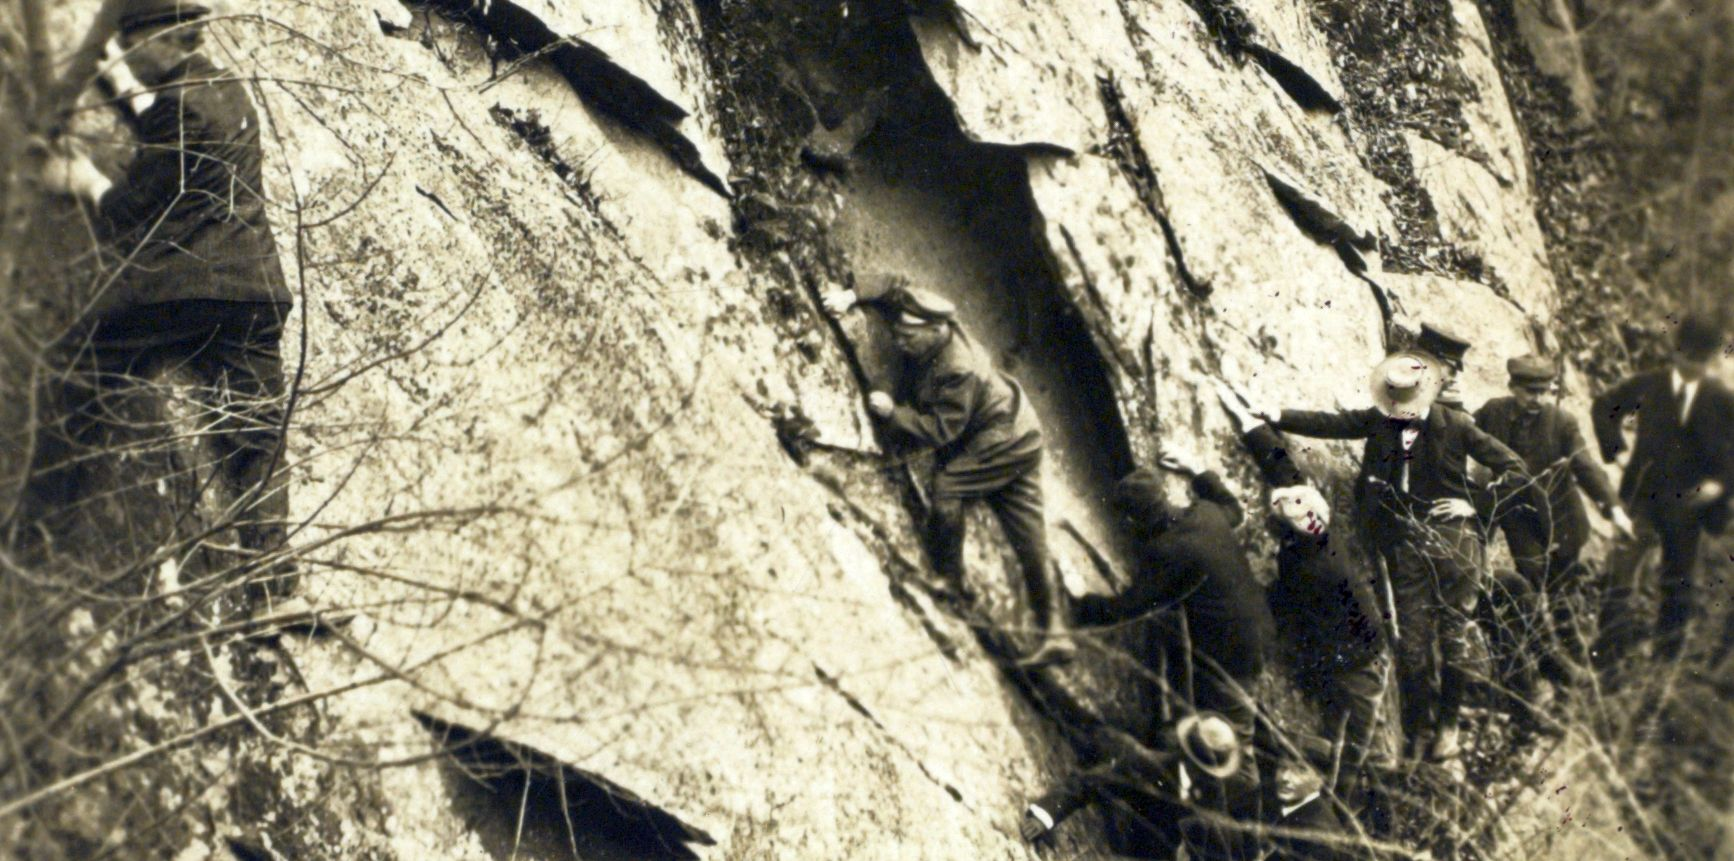 Teddy leads a a group in climbing, probably on Pulpit Rock in Rock Creek Park. Library of Congress.